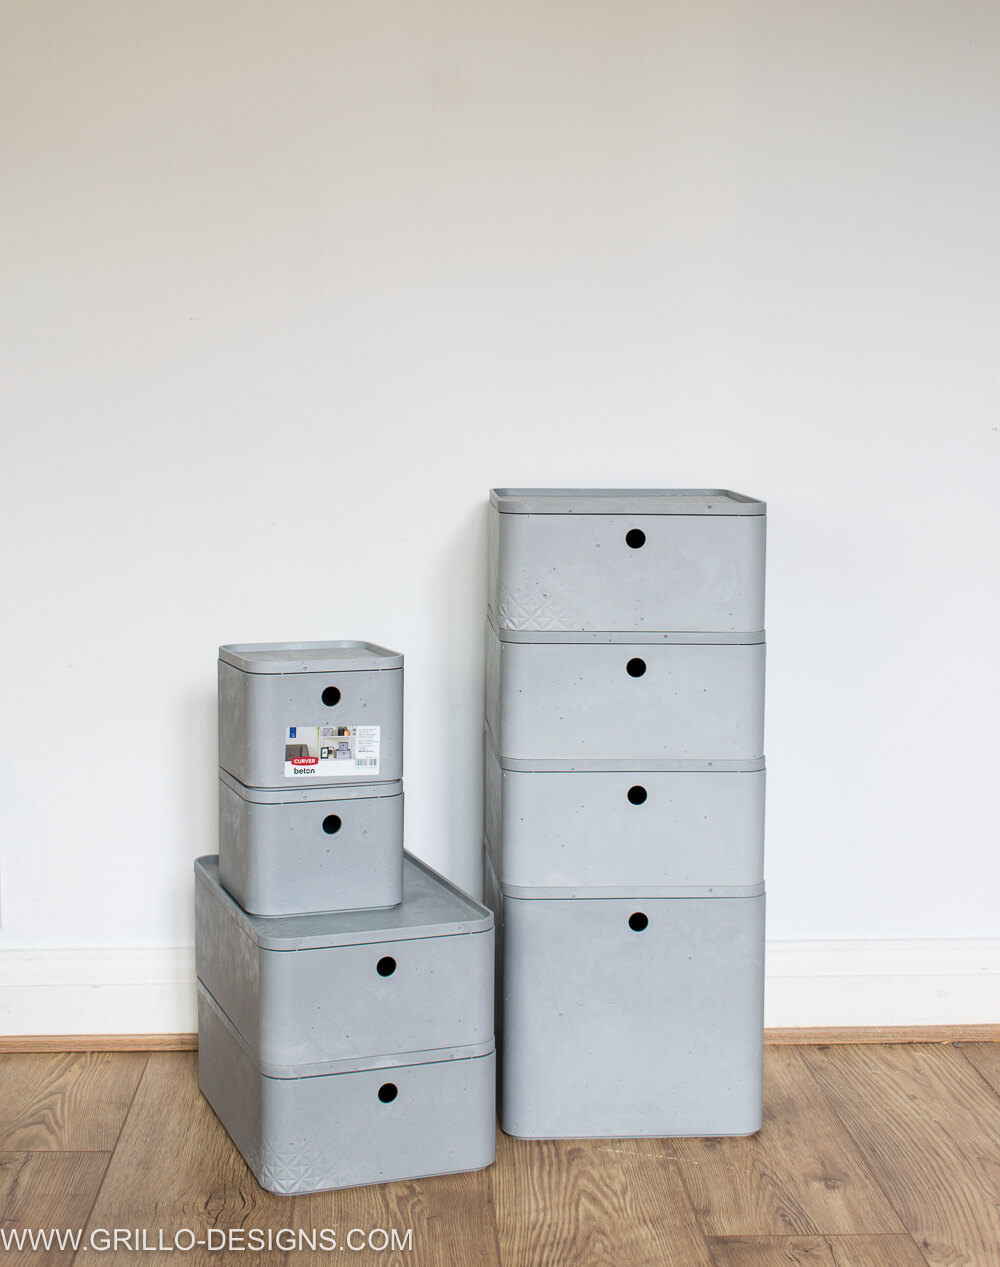 Image of curver boxes stacked on top of each other on the laminate flooring , against a white wall